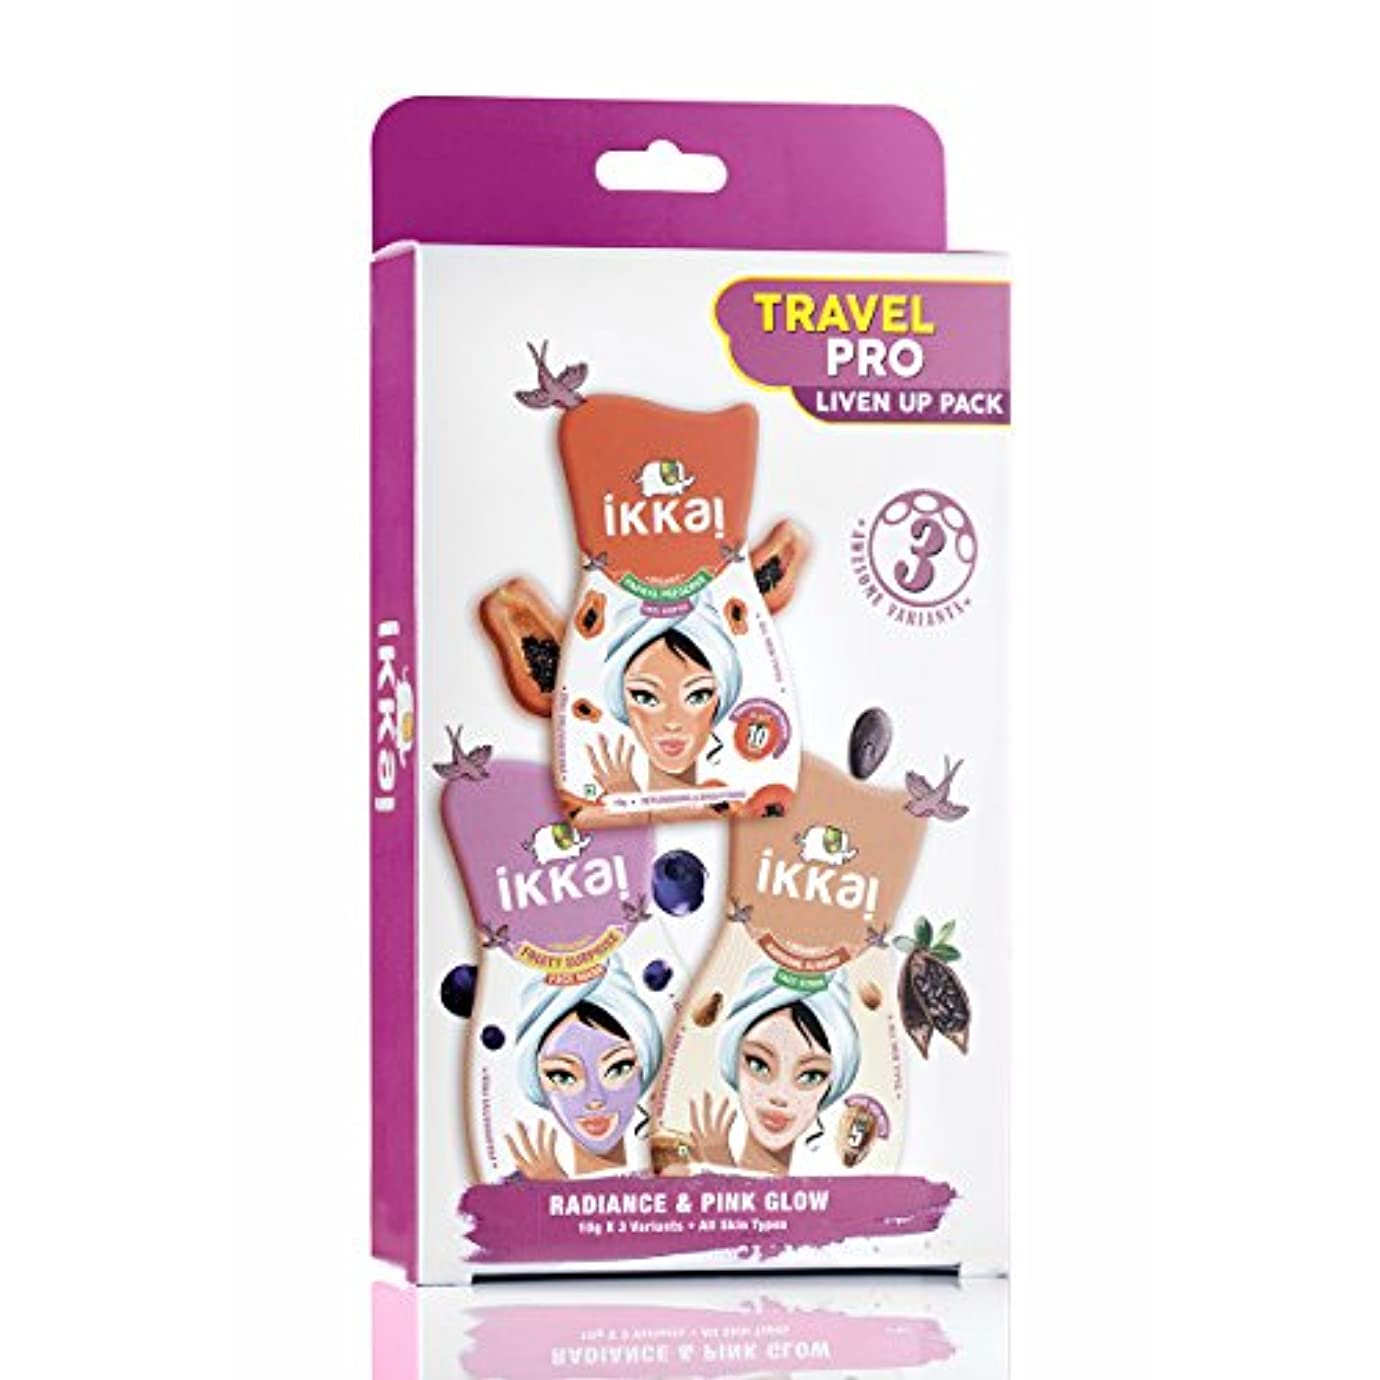 Ikkai by Lotus Herbals Travel Pro Liven Up Pack (1 Face Mask, 1 Face Scrub and 1 Face Souffle)